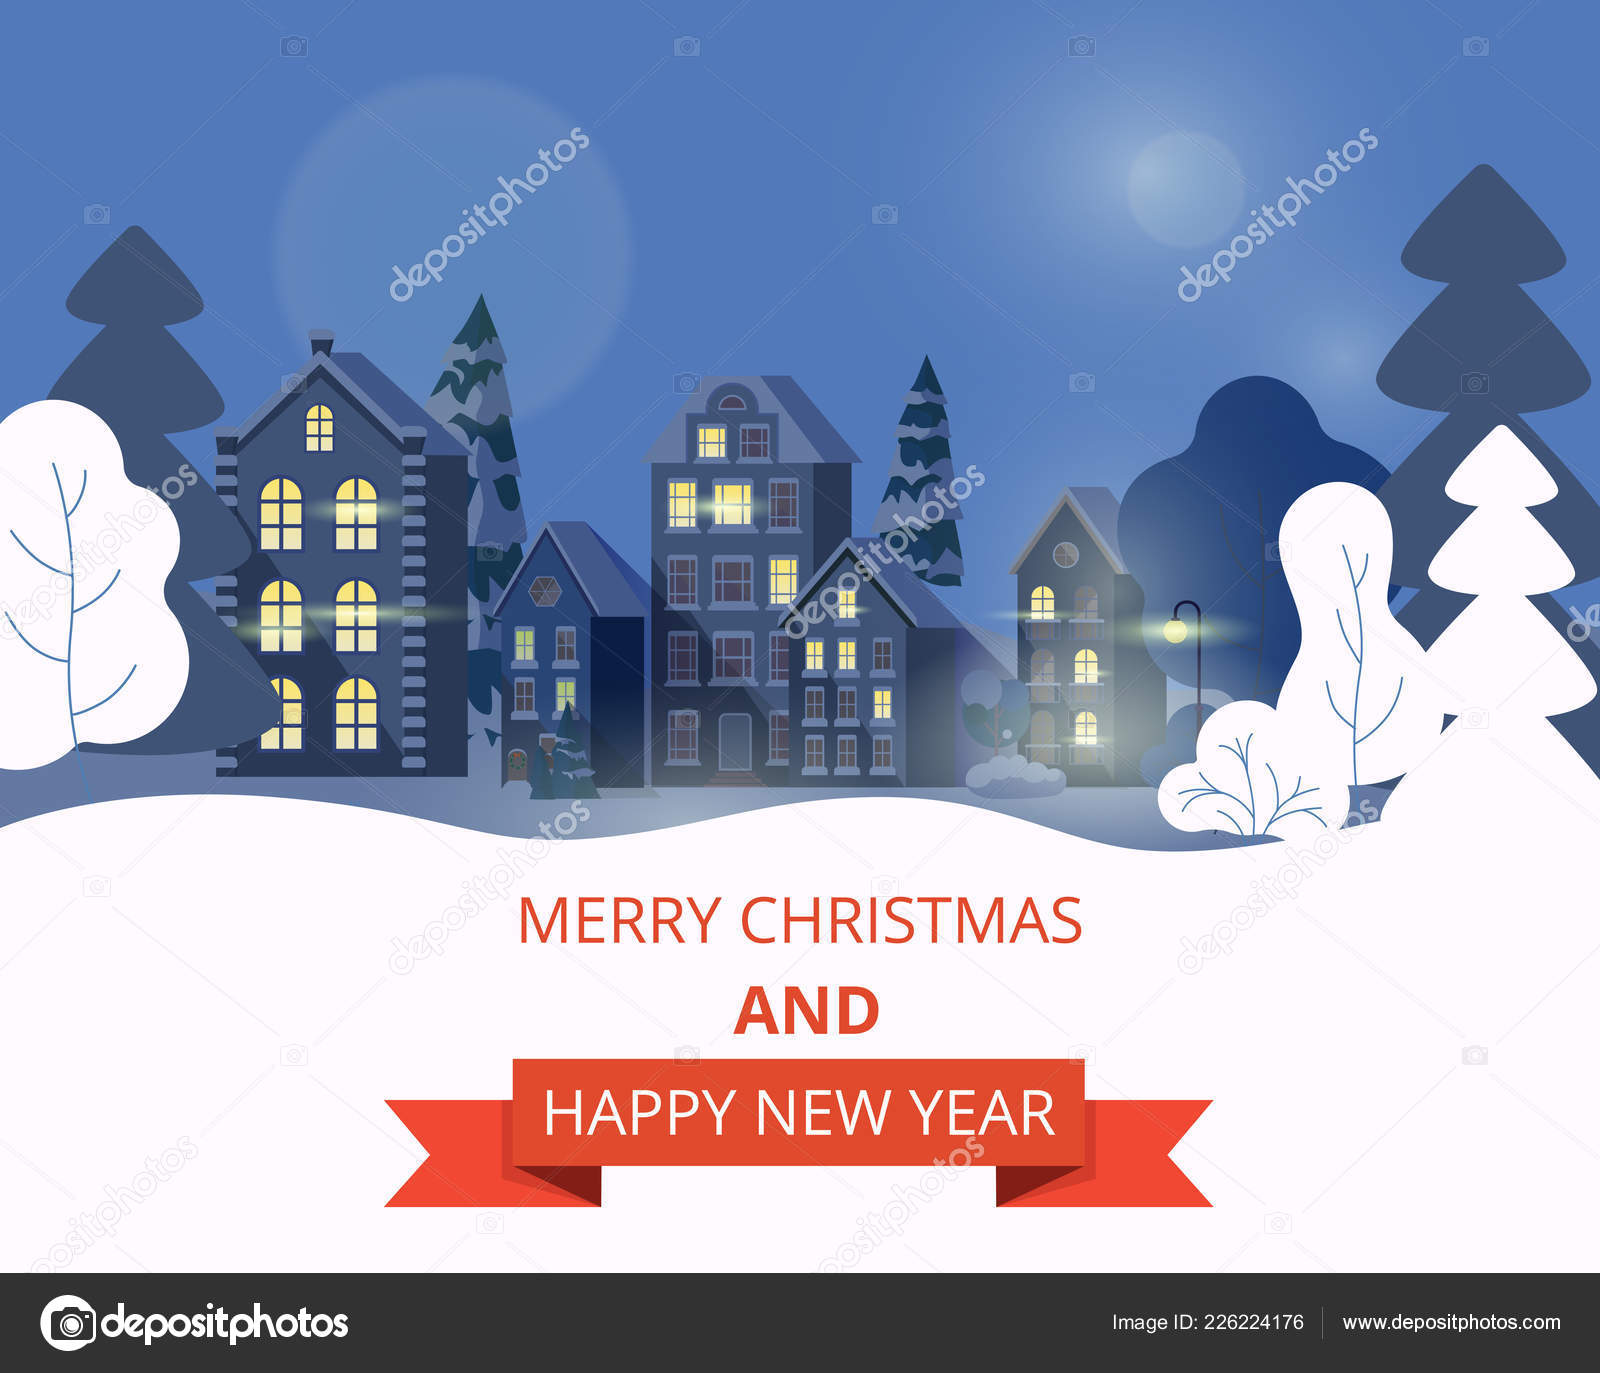 merry christmas and happy new year card with winter cityscape stock vector